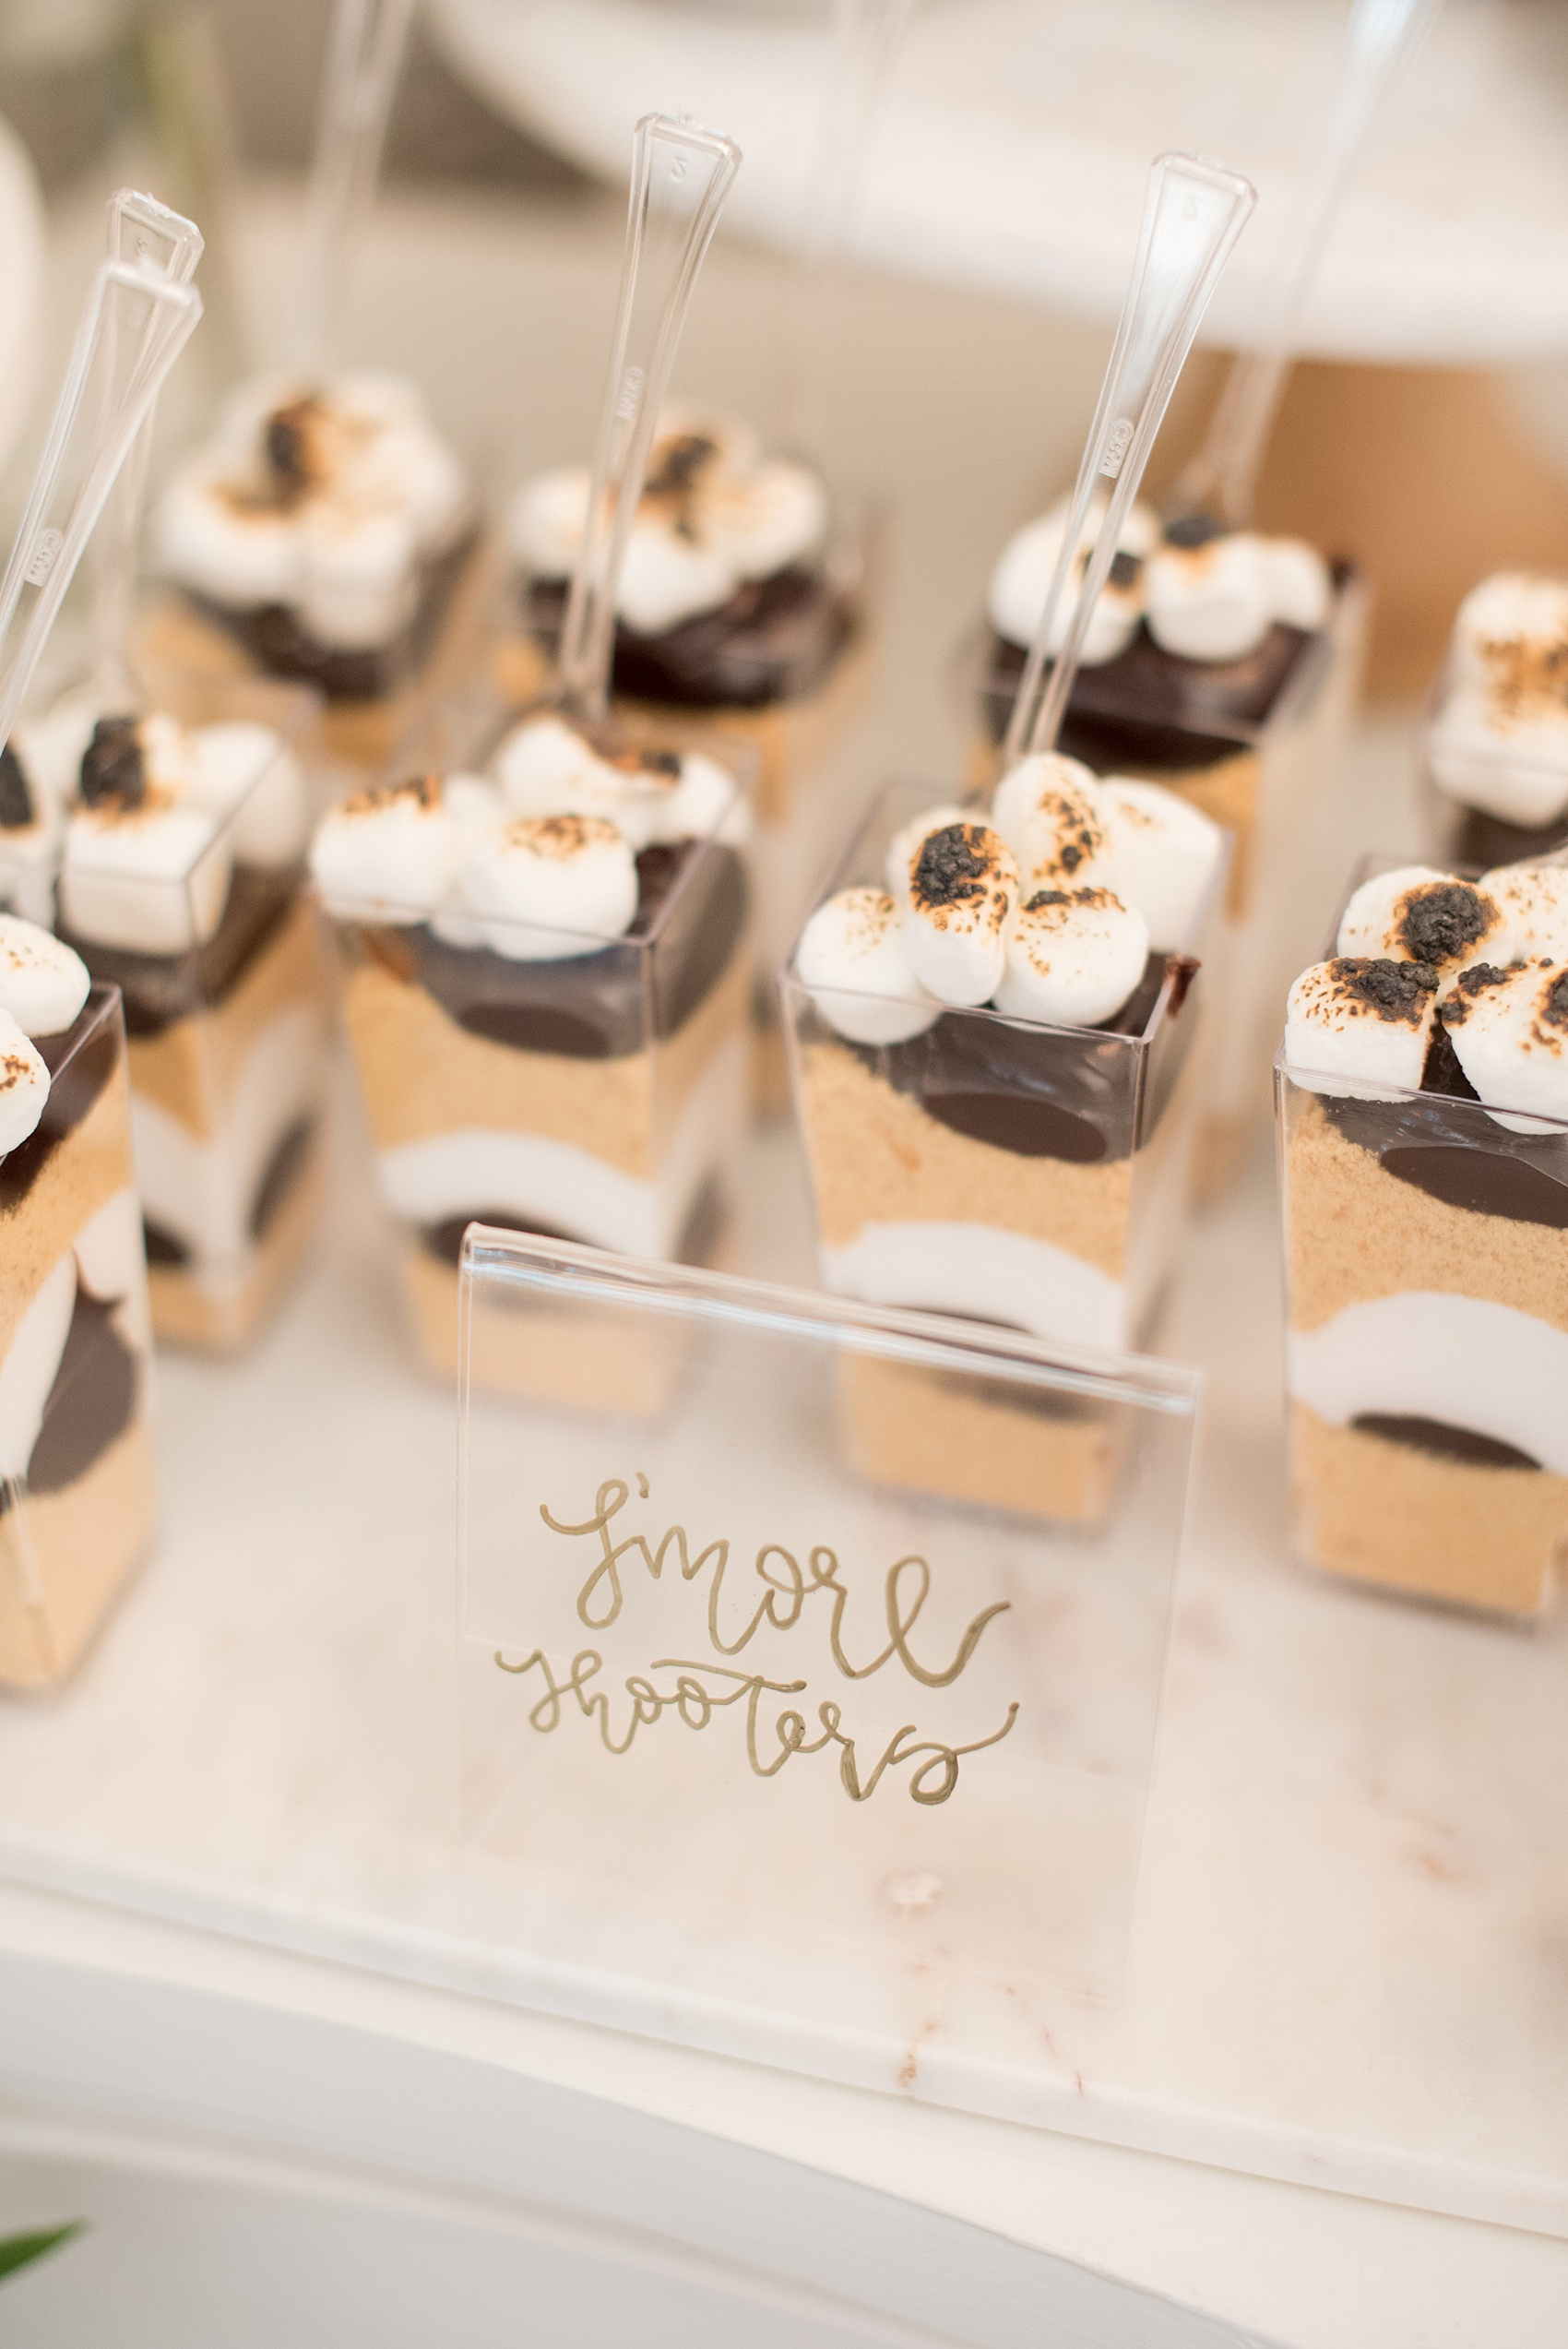 Mikkel Paige Photography pictures from a wedding at Merrimon-Wynne House in Raleigh, NC. Photo of s'mores cups on the dessert table.